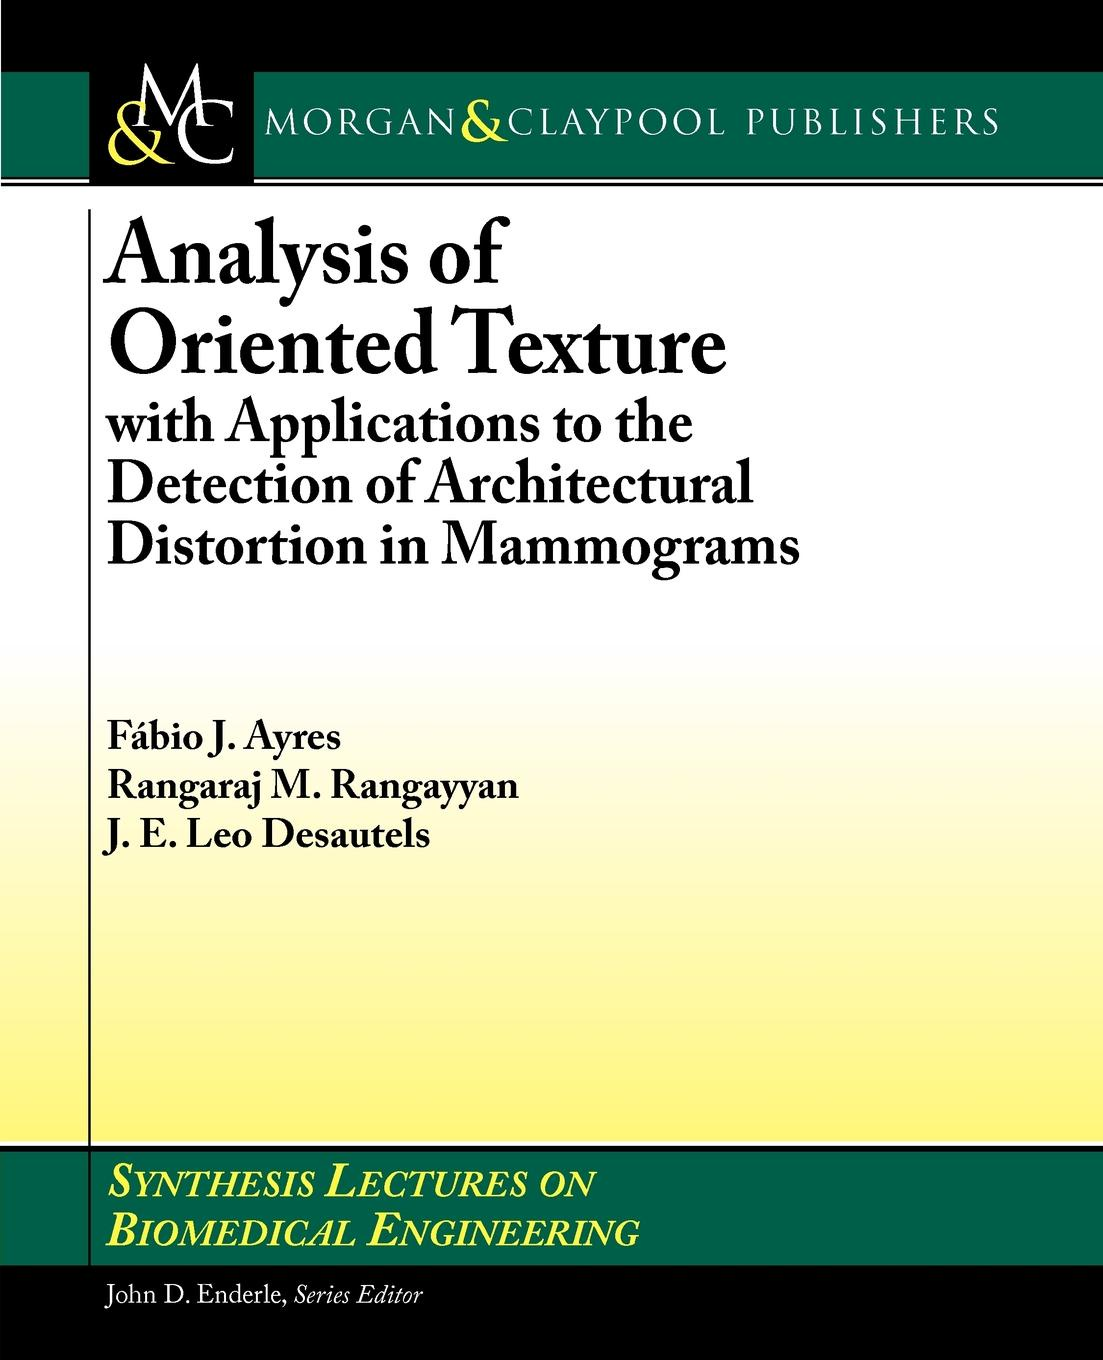 Fabio Ayres, Rangaraj Rangayyan, J.E. Leo Desautels Analysis of Oriented Texture with Applications to the Detection of Architectural Distortion in Mammograms analysis of nifedipine microsphere